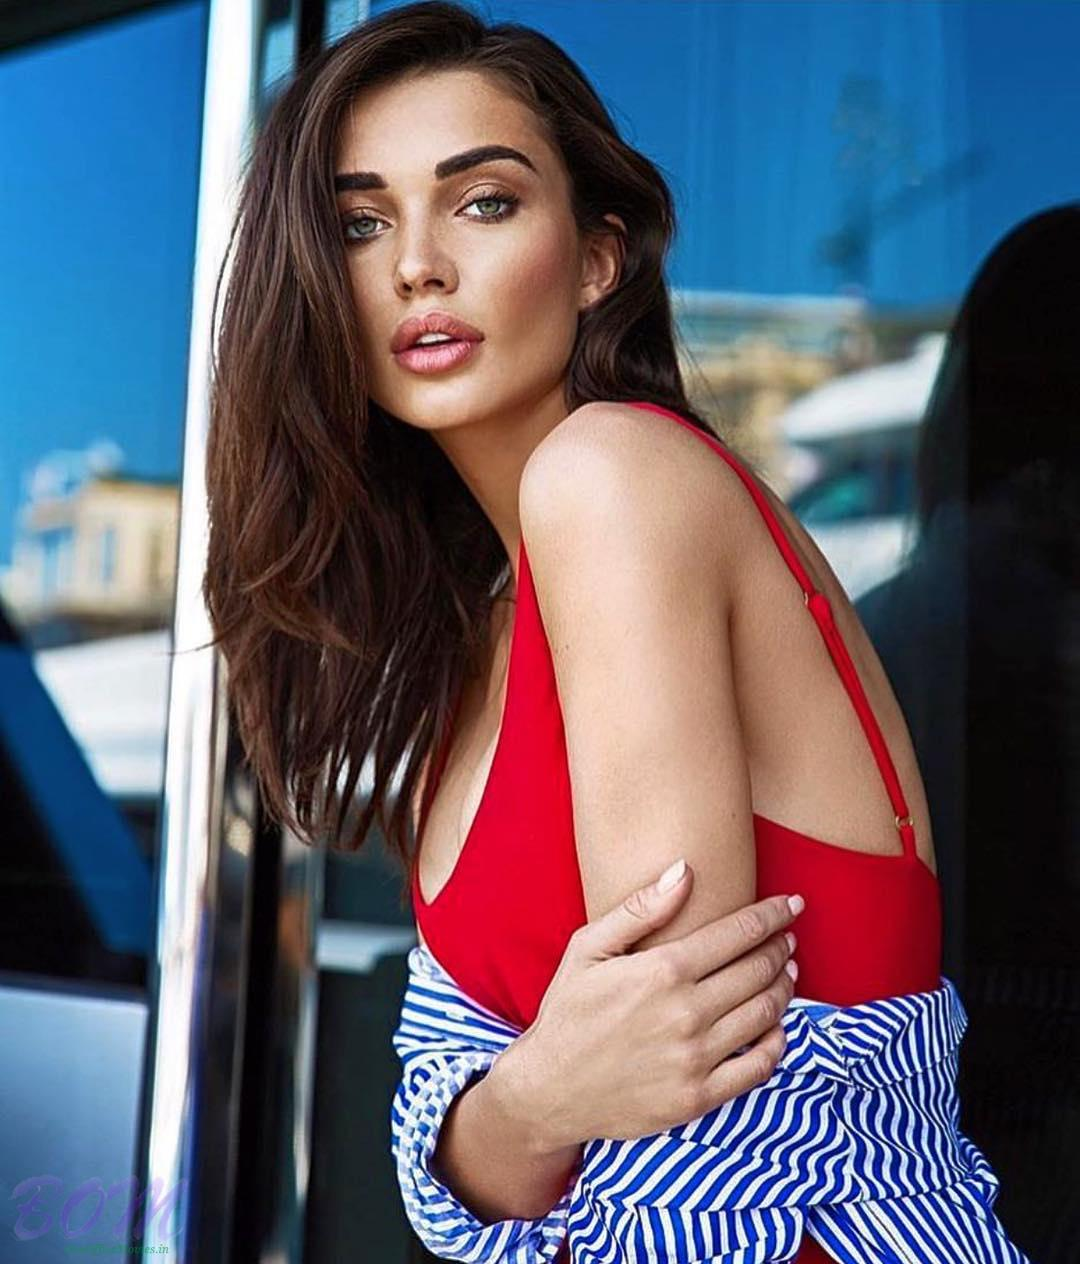 Amy Jackson stylish pic on loving summer 2017